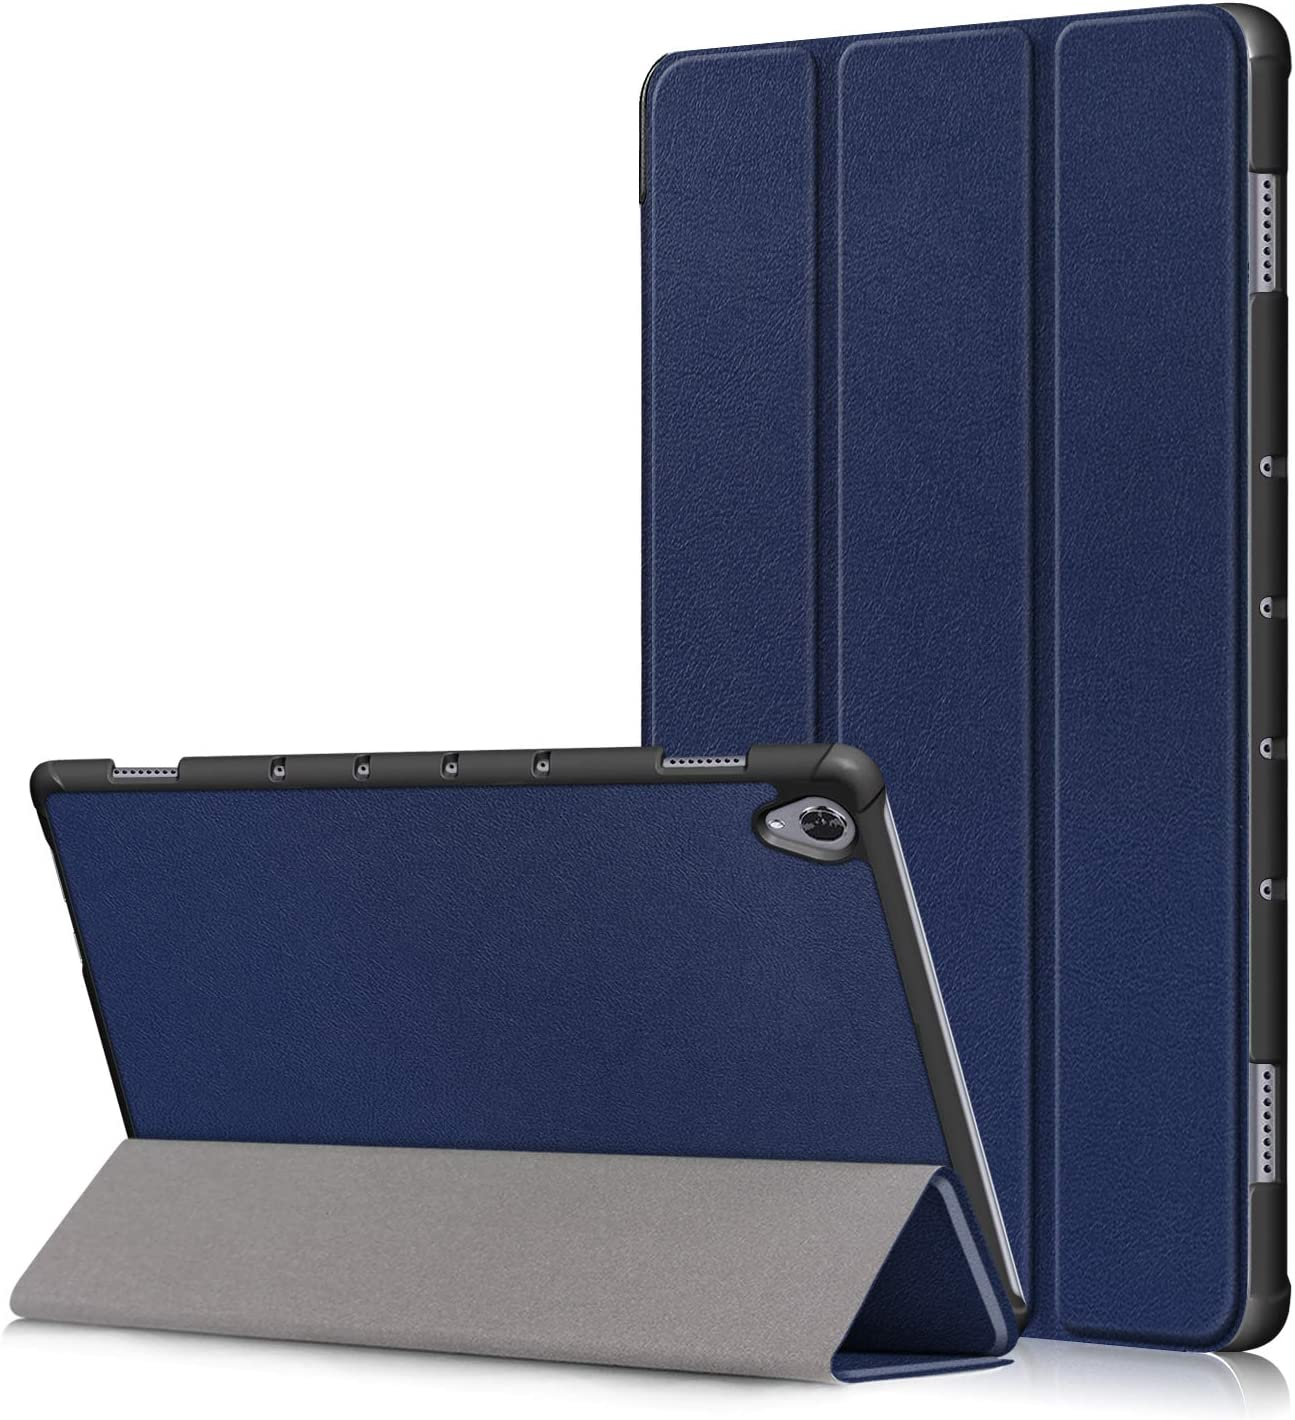 Huawei Mediapad M6 10.7 2019 Flip Case,Heavy Duty Hard Kid Proof Cover PU Floding Cover with Protection Ultra Slim Shell with Auto Wake//Sleep for Huawei Mediapad M6 10.7 2019 Tablet PC deep Blue